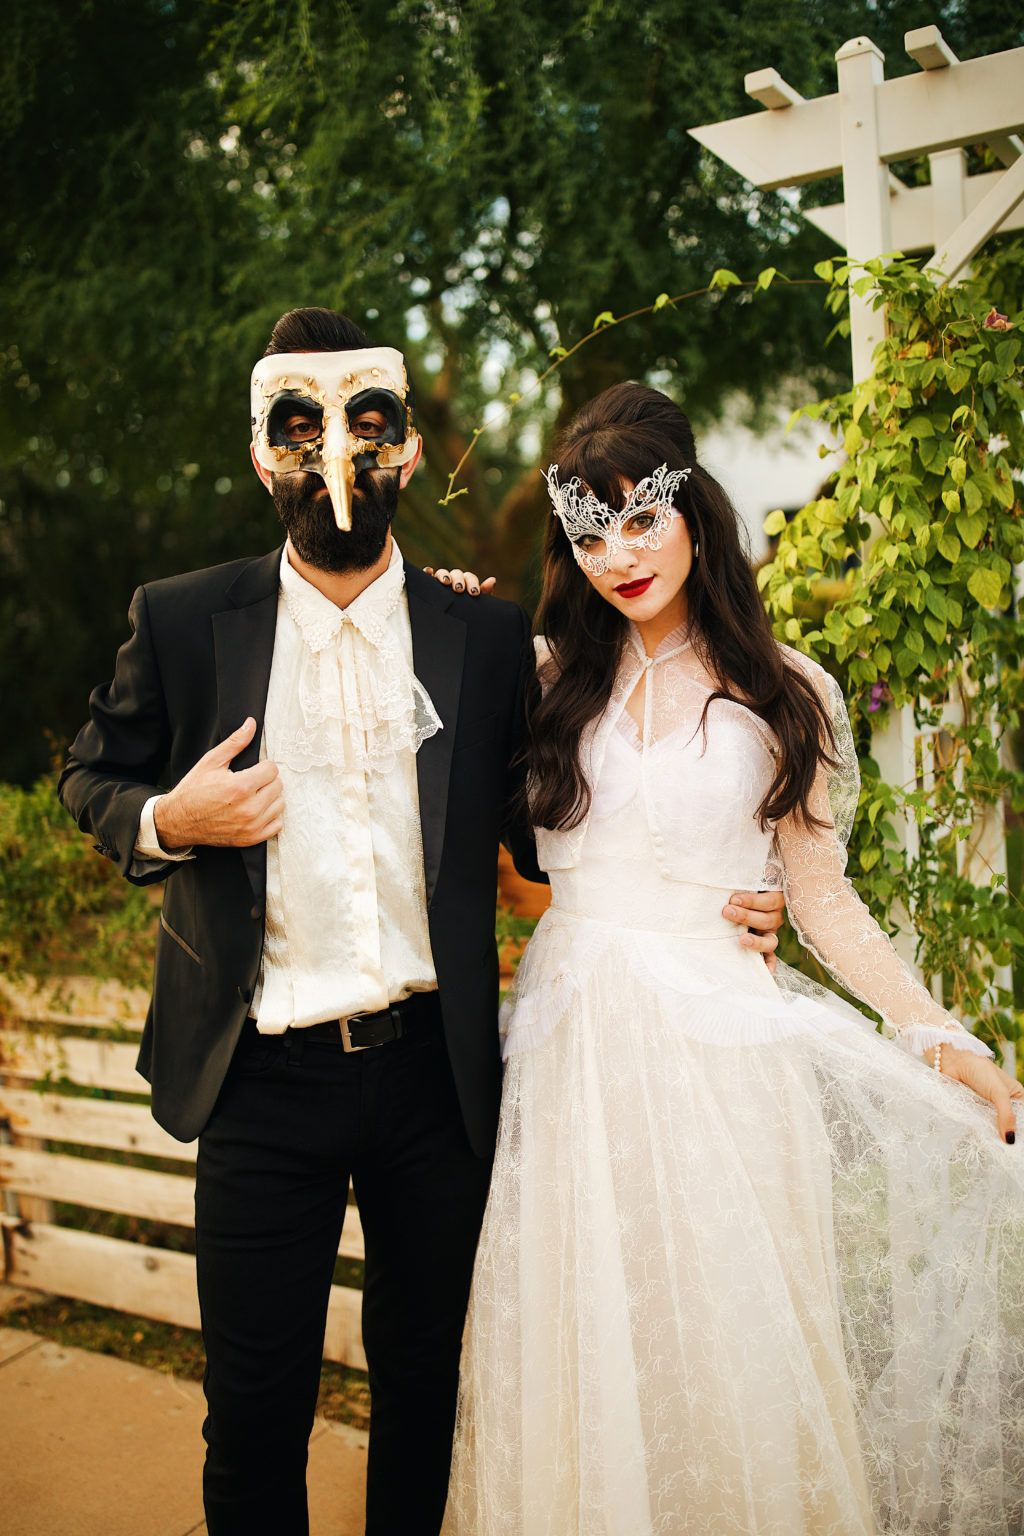 Couples Costume Ideas Masquerade Ball New Darlings Masquerade Outfit Masquerade Ball Outfits Masquerade Ball Costume